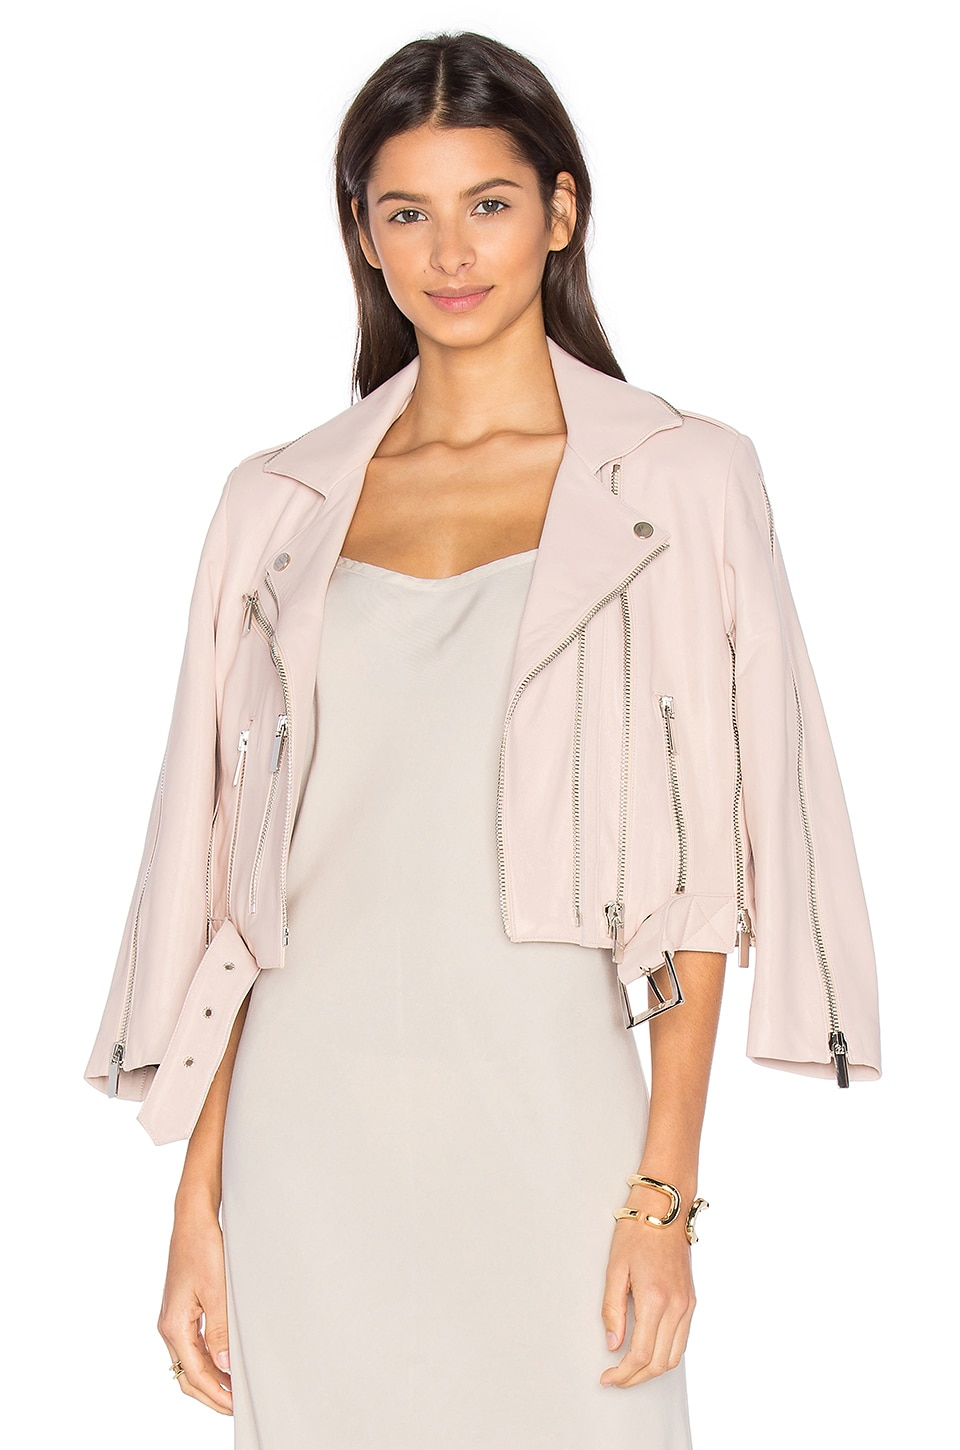 NOUR HAMMOUR Avalon Jacket in Ice Pink